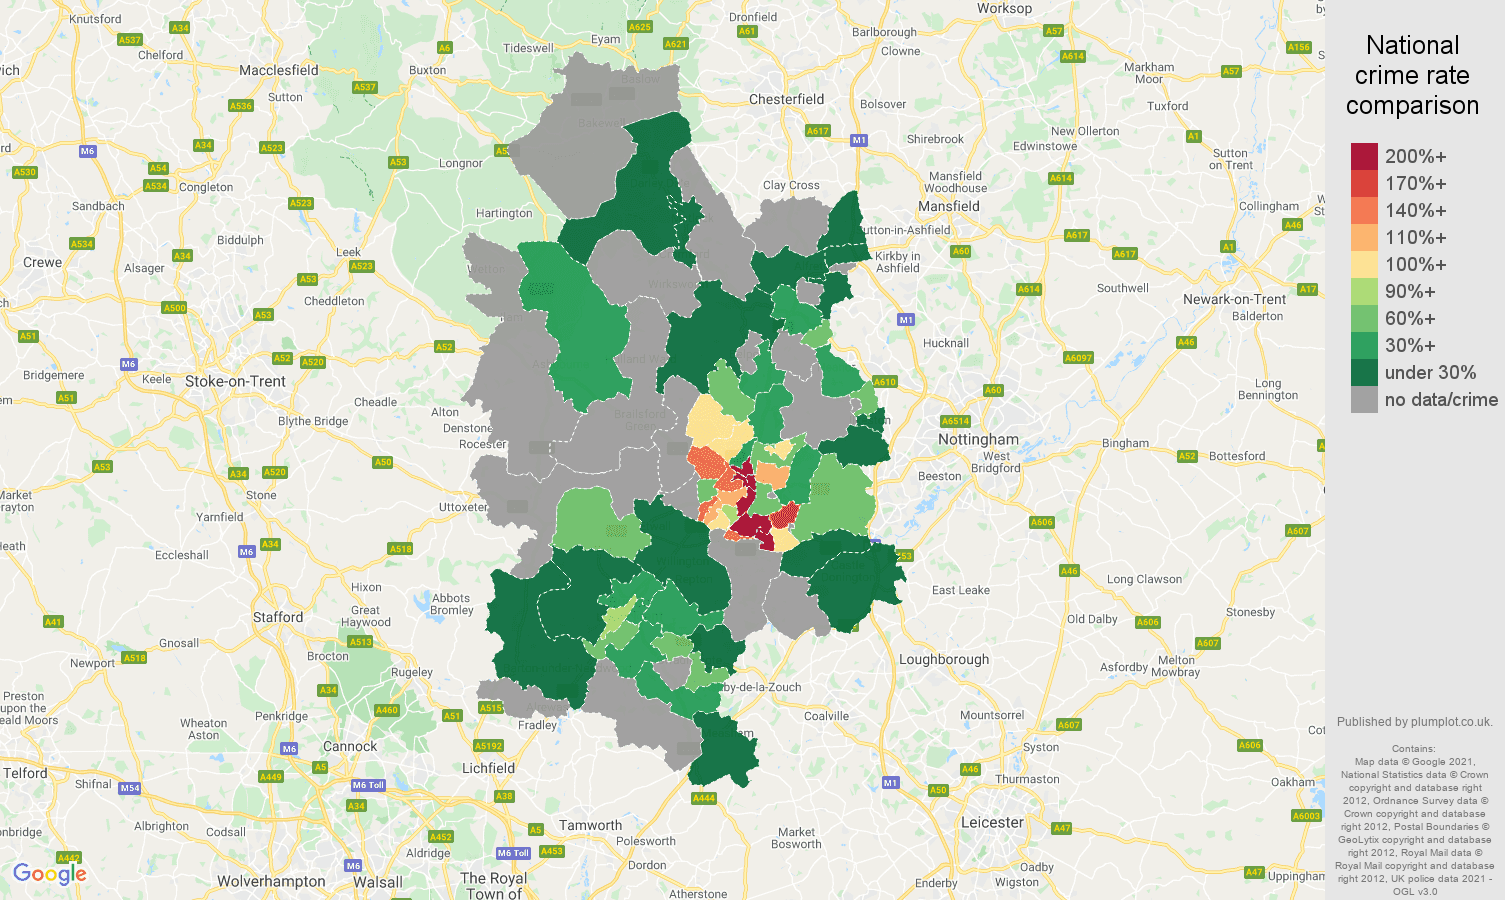 Derby robbery crime rate comparison map